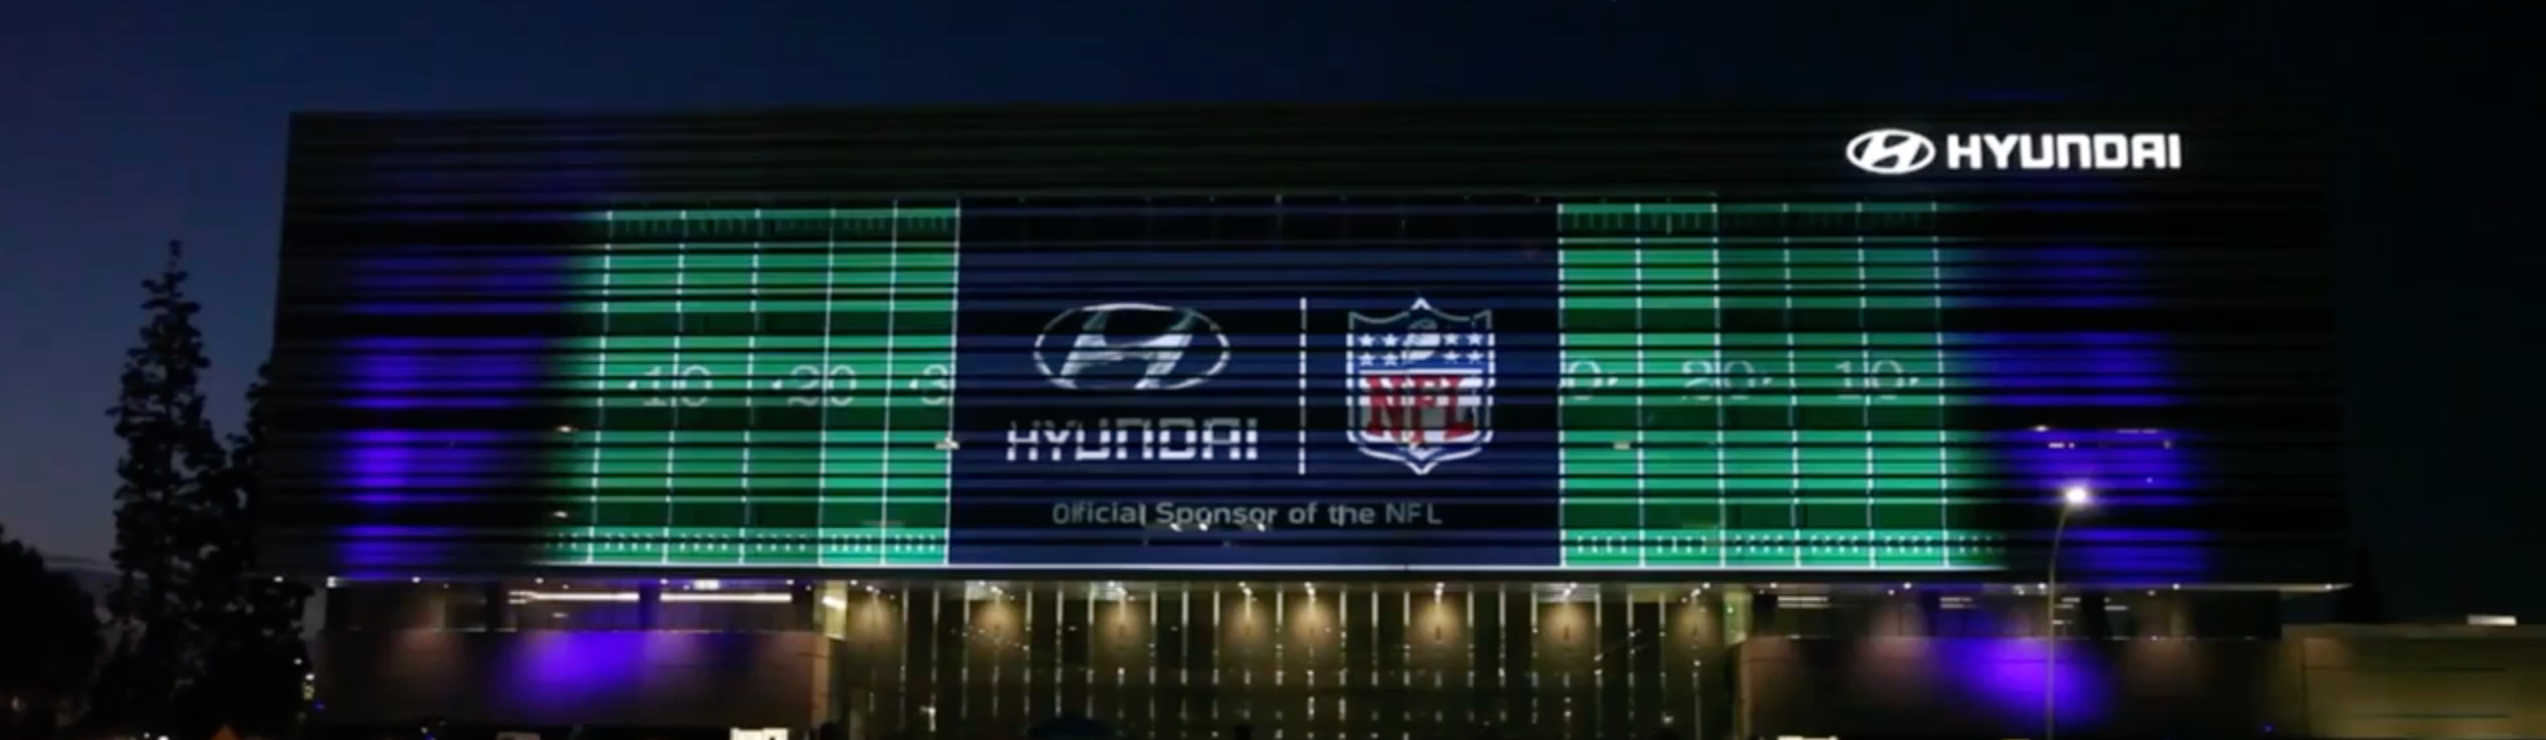 NFL Projection Mapping on the side of Hyundai headquarters